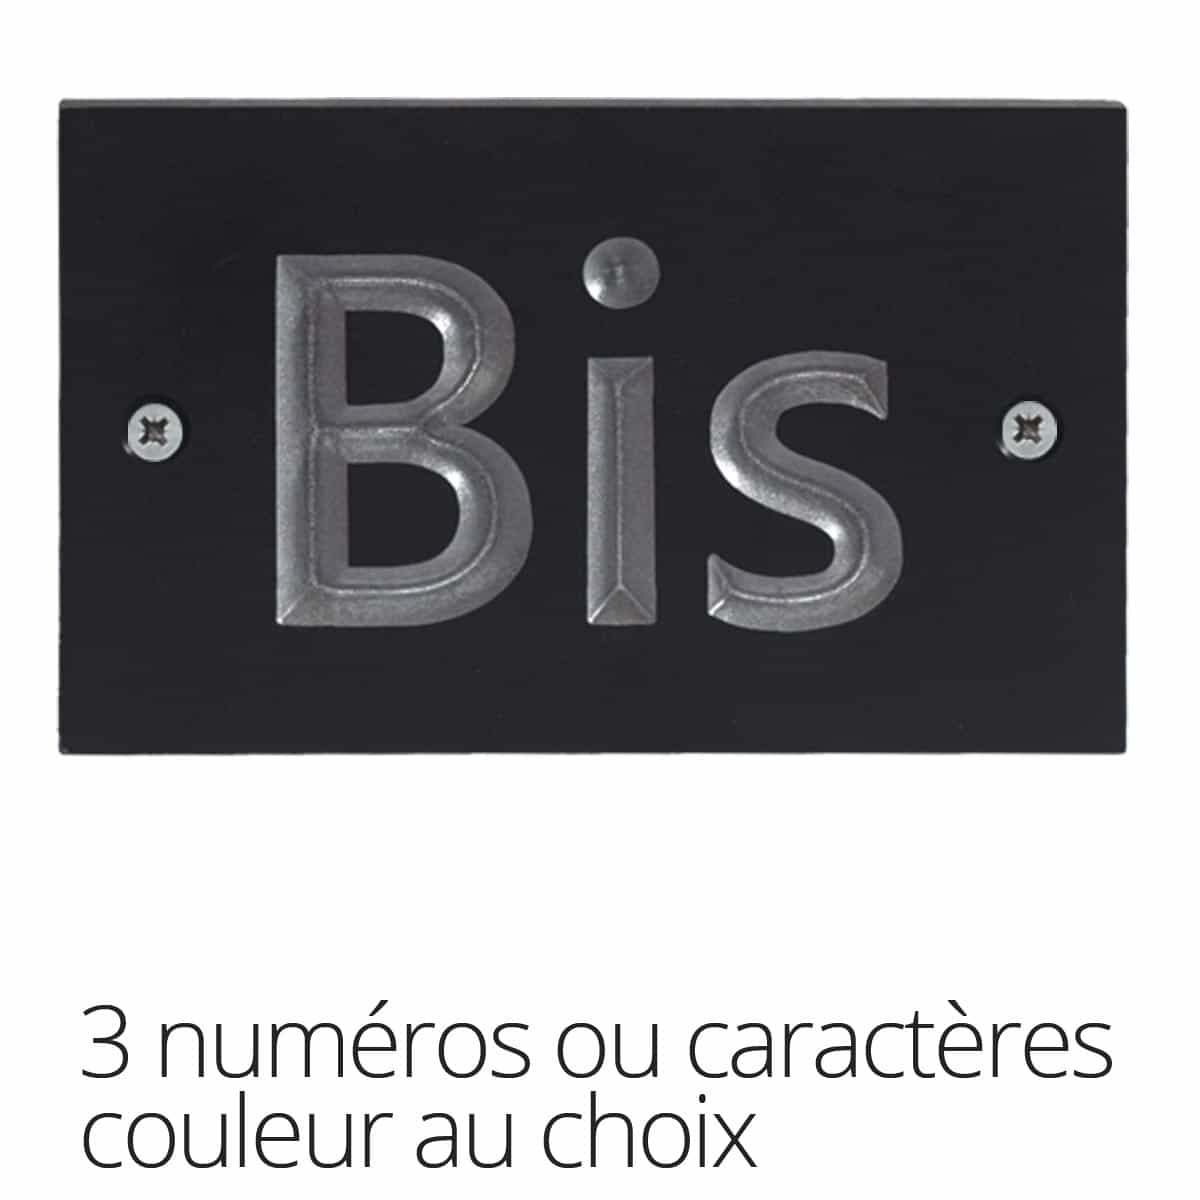 plaque num ro maison 3 caract res en plastique recycl signal tique num ro maison. Black Bedroom Furniture Sets. Home Design Ideas